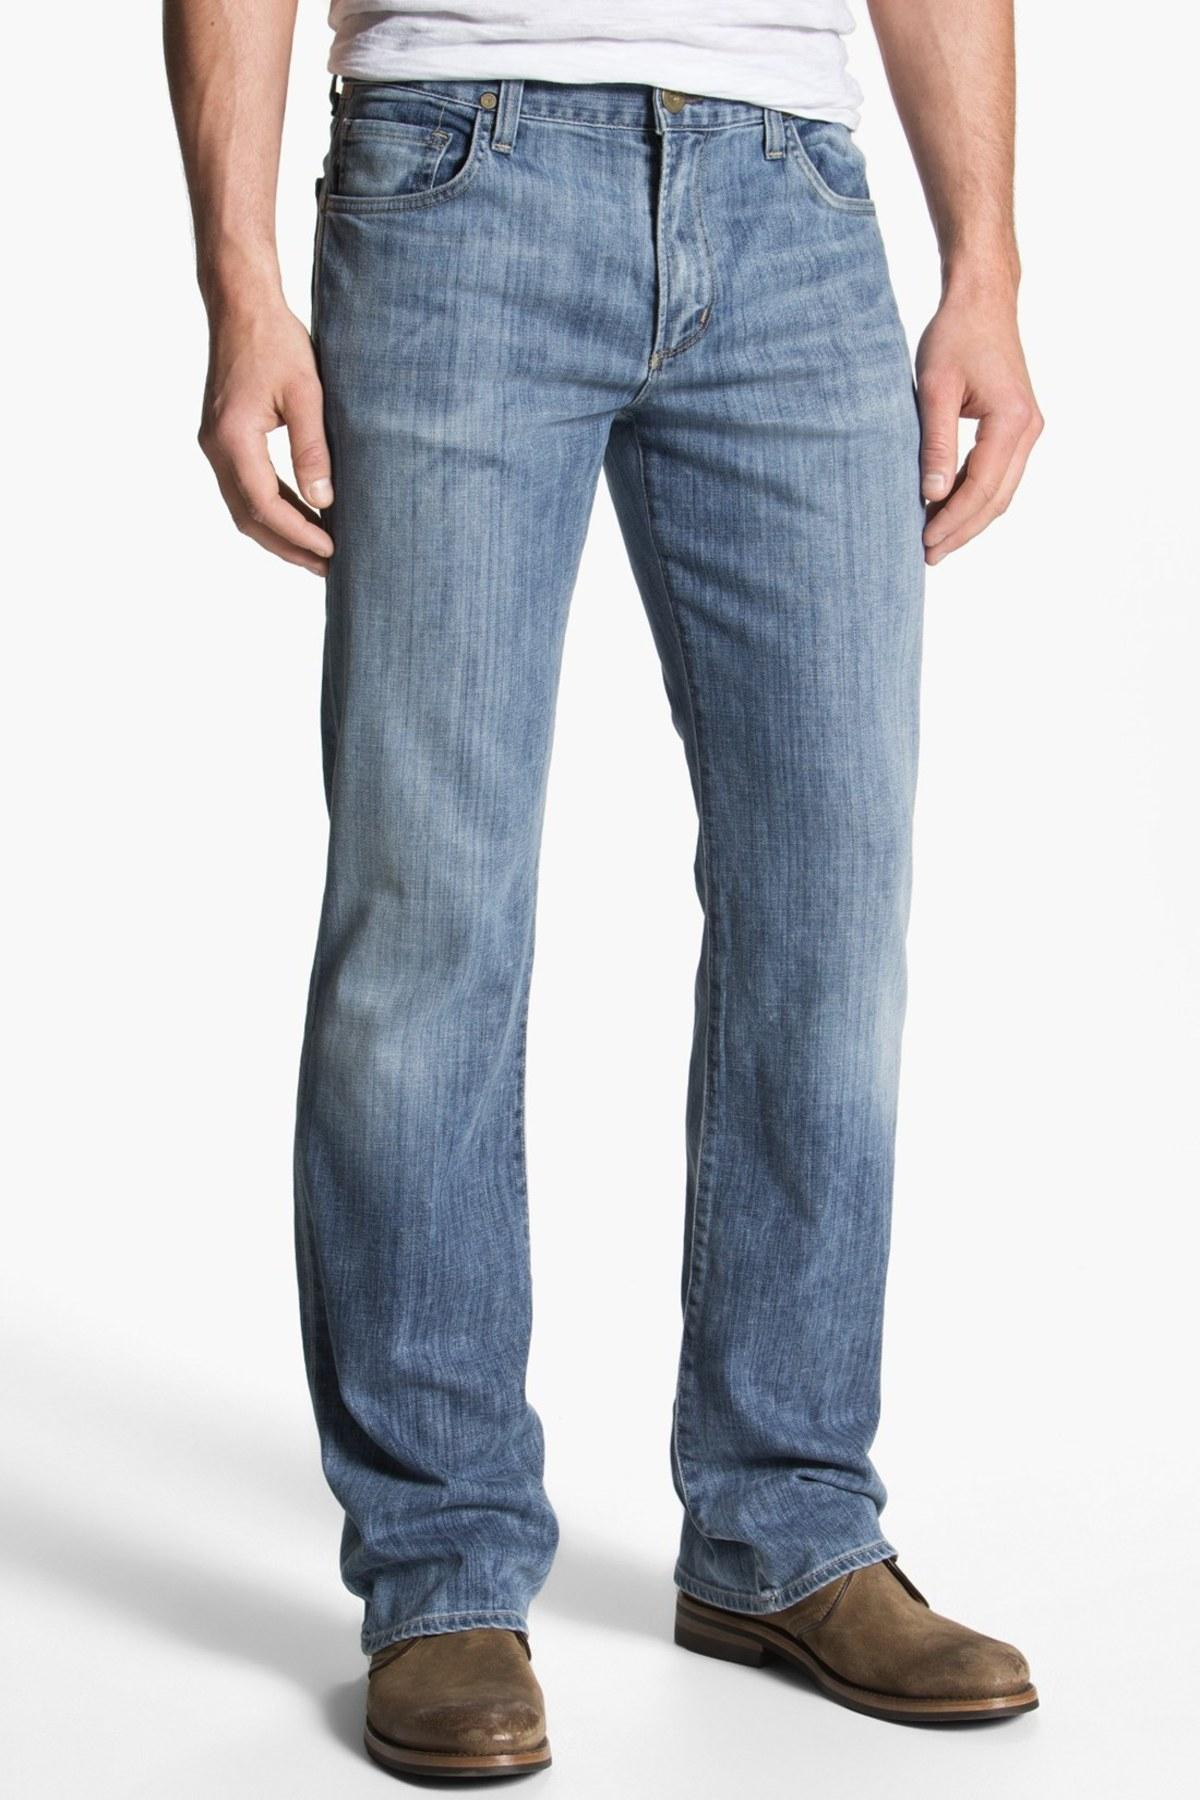 Citizens of humanity Relaxed Fit Bootcut Jeans in Blue for ...